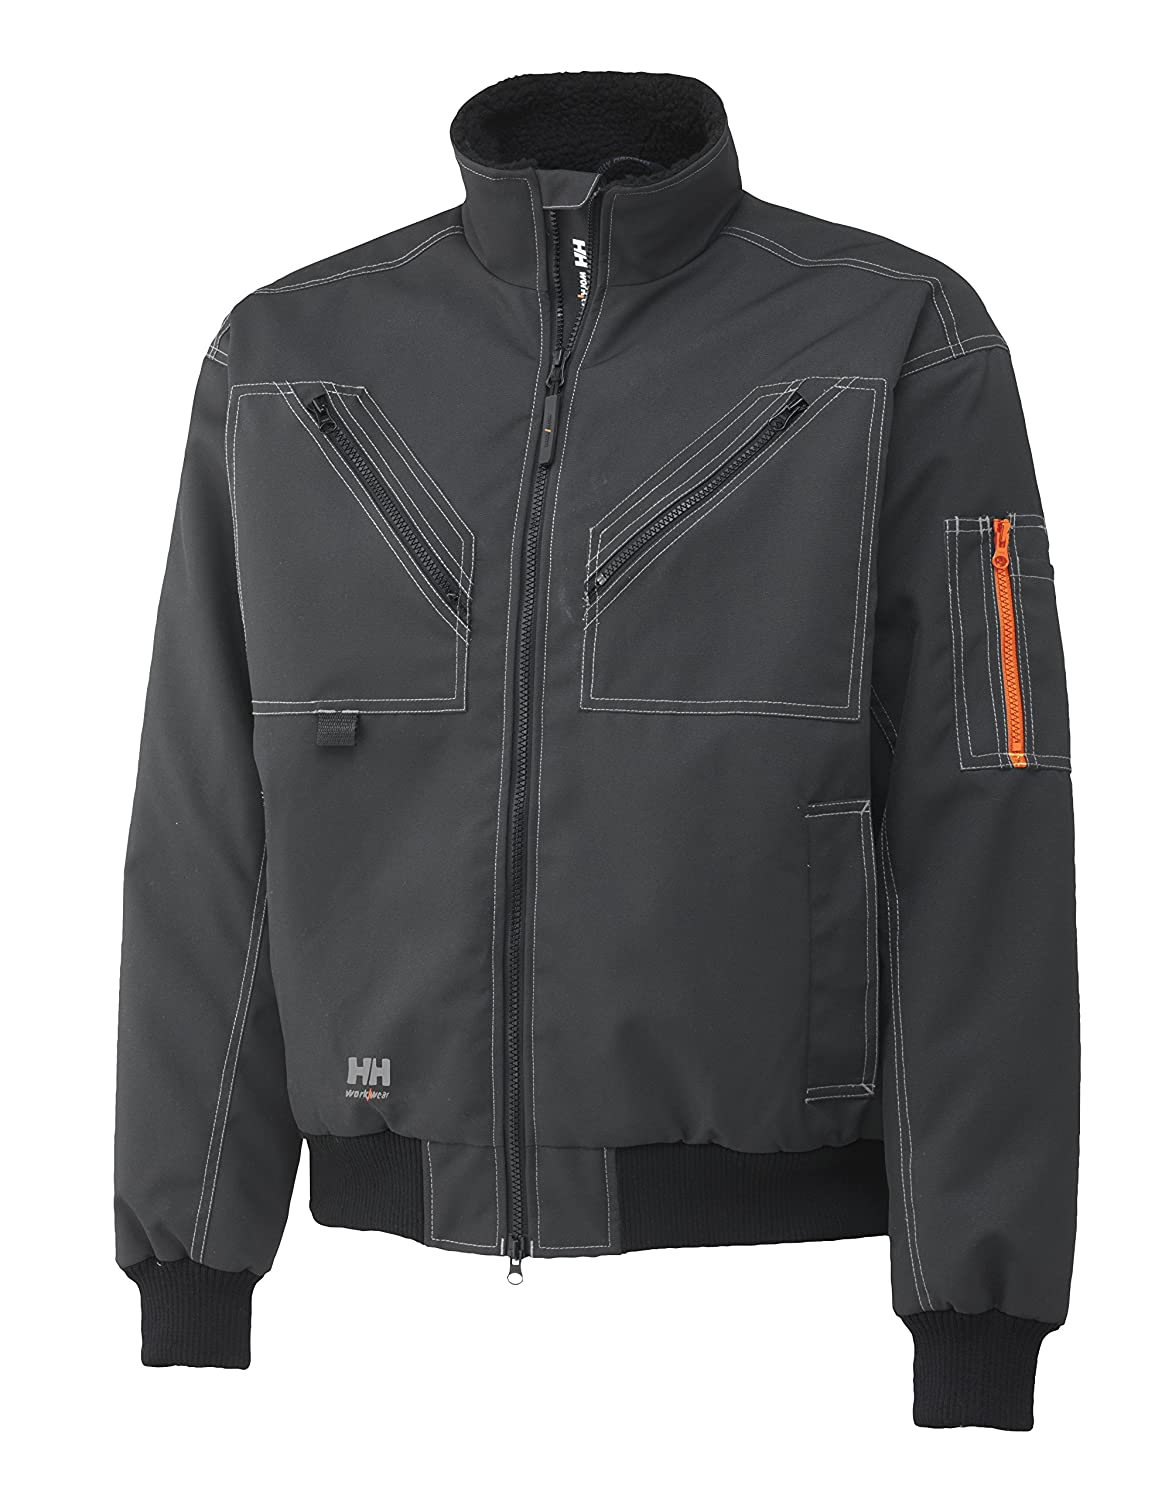 Helly Hansen Workwear Mens Bergholm Insulated Jacket